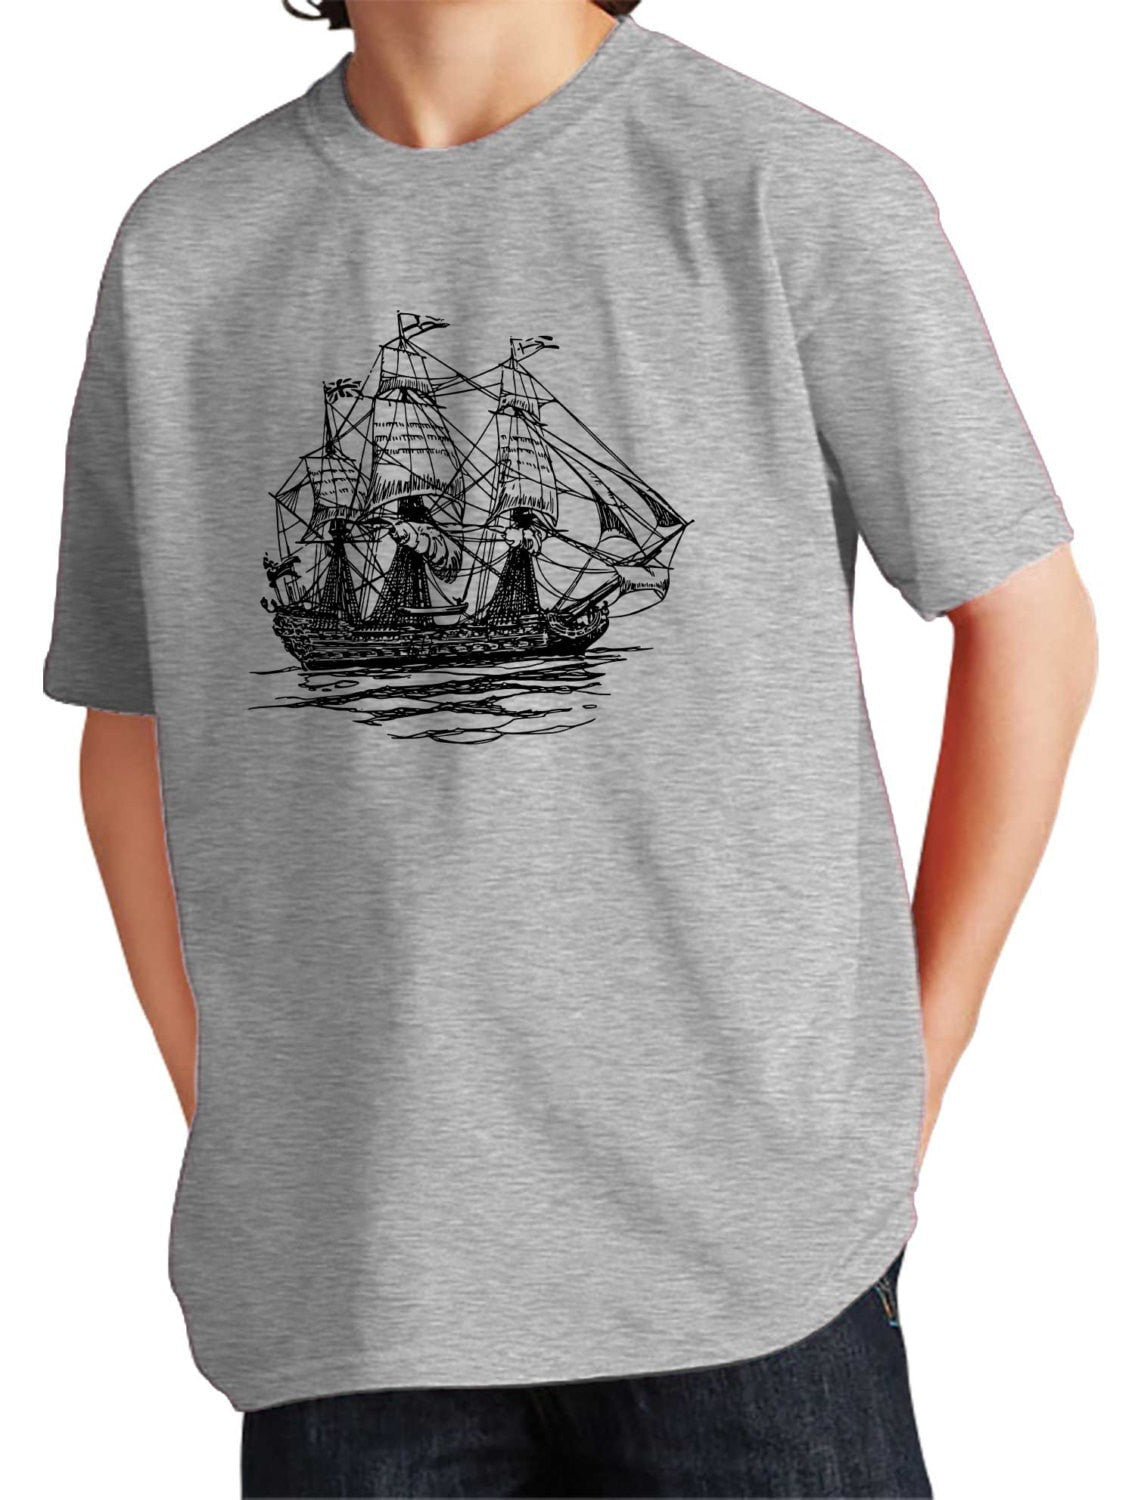 Girl's Pirate Ship T-Shirt - Unisex Fit Nautical